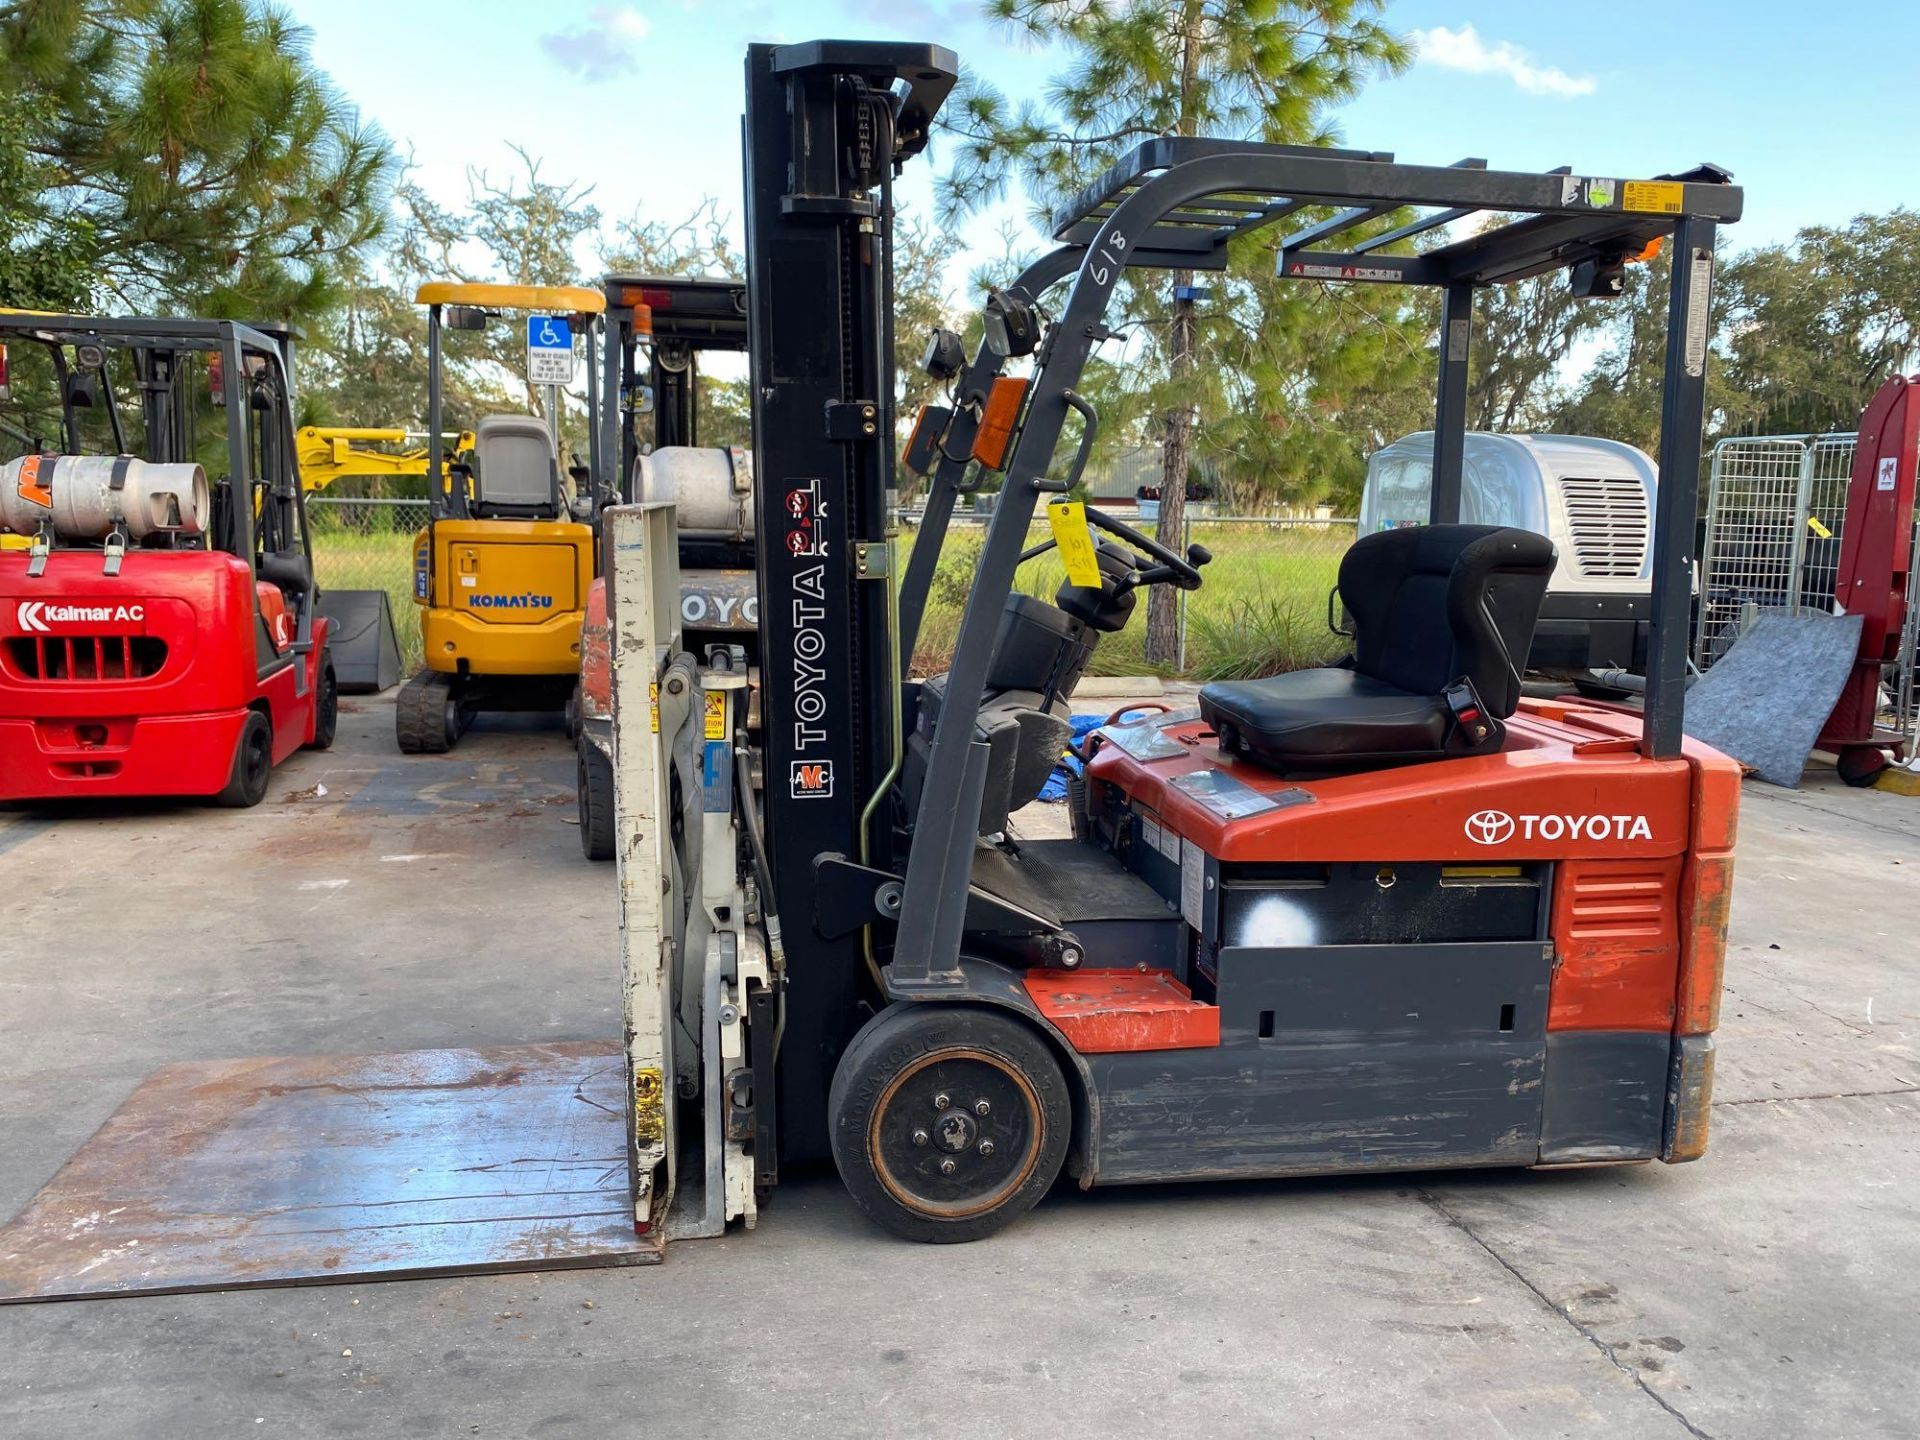 TOYOTA ELECTRIC FORKLIFT MODEL 7FBEU20, 4,000 LB CAPACITY, CASCADE PUSH/PULL ATTACHMENT, TILT, SIDE - Image 3 of 24